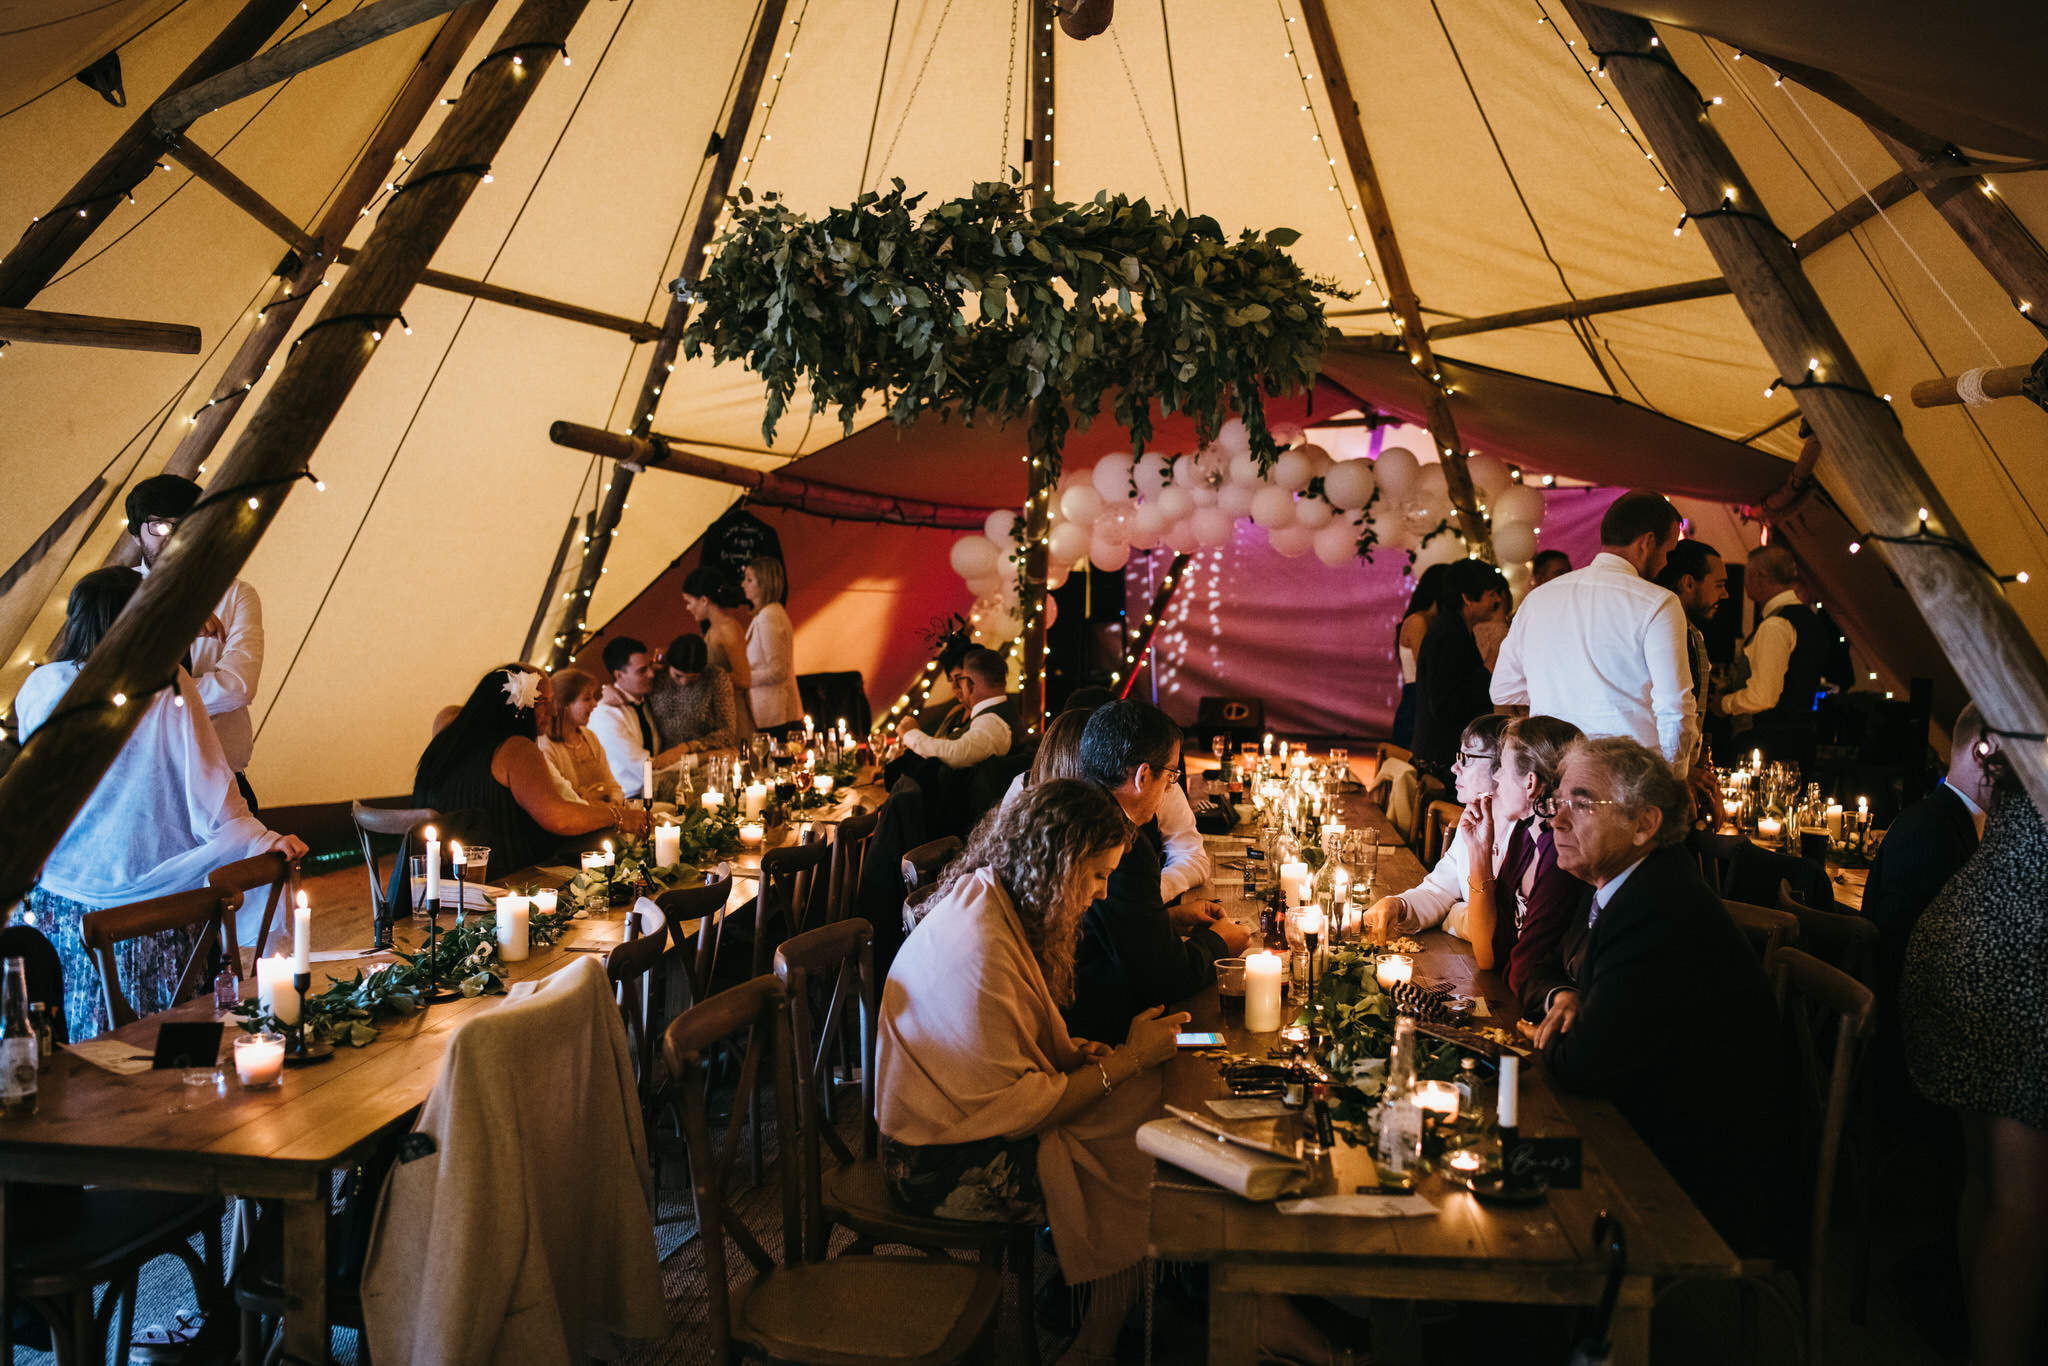 Cannon hall wedding in tipi tent